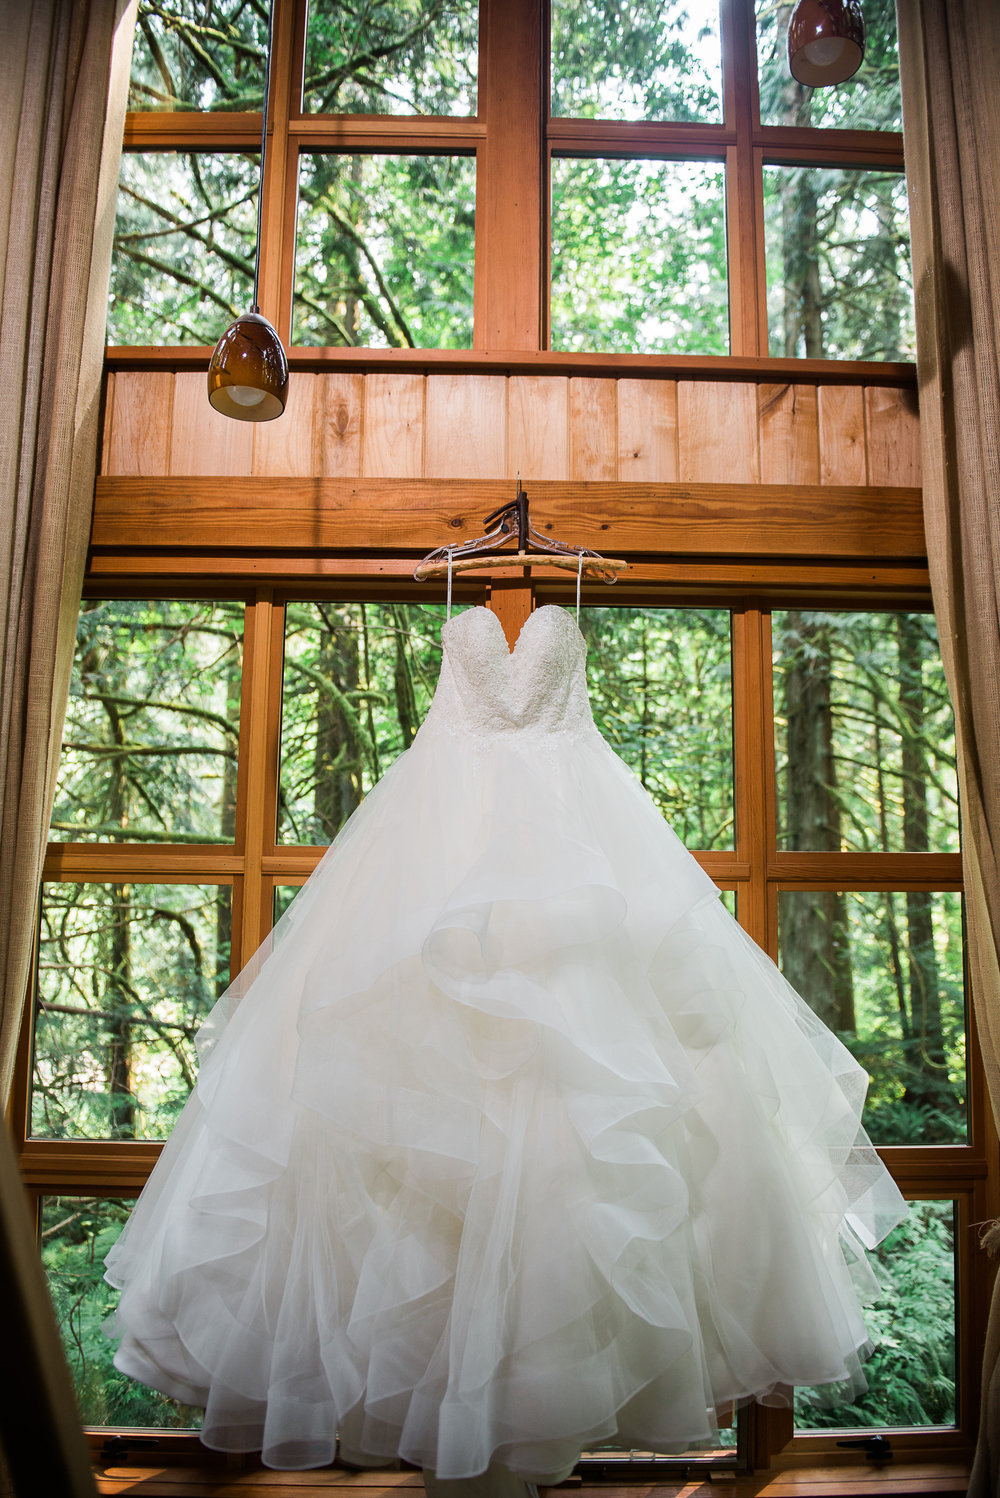 ruffled strapless wedding dress hanging from a tree house